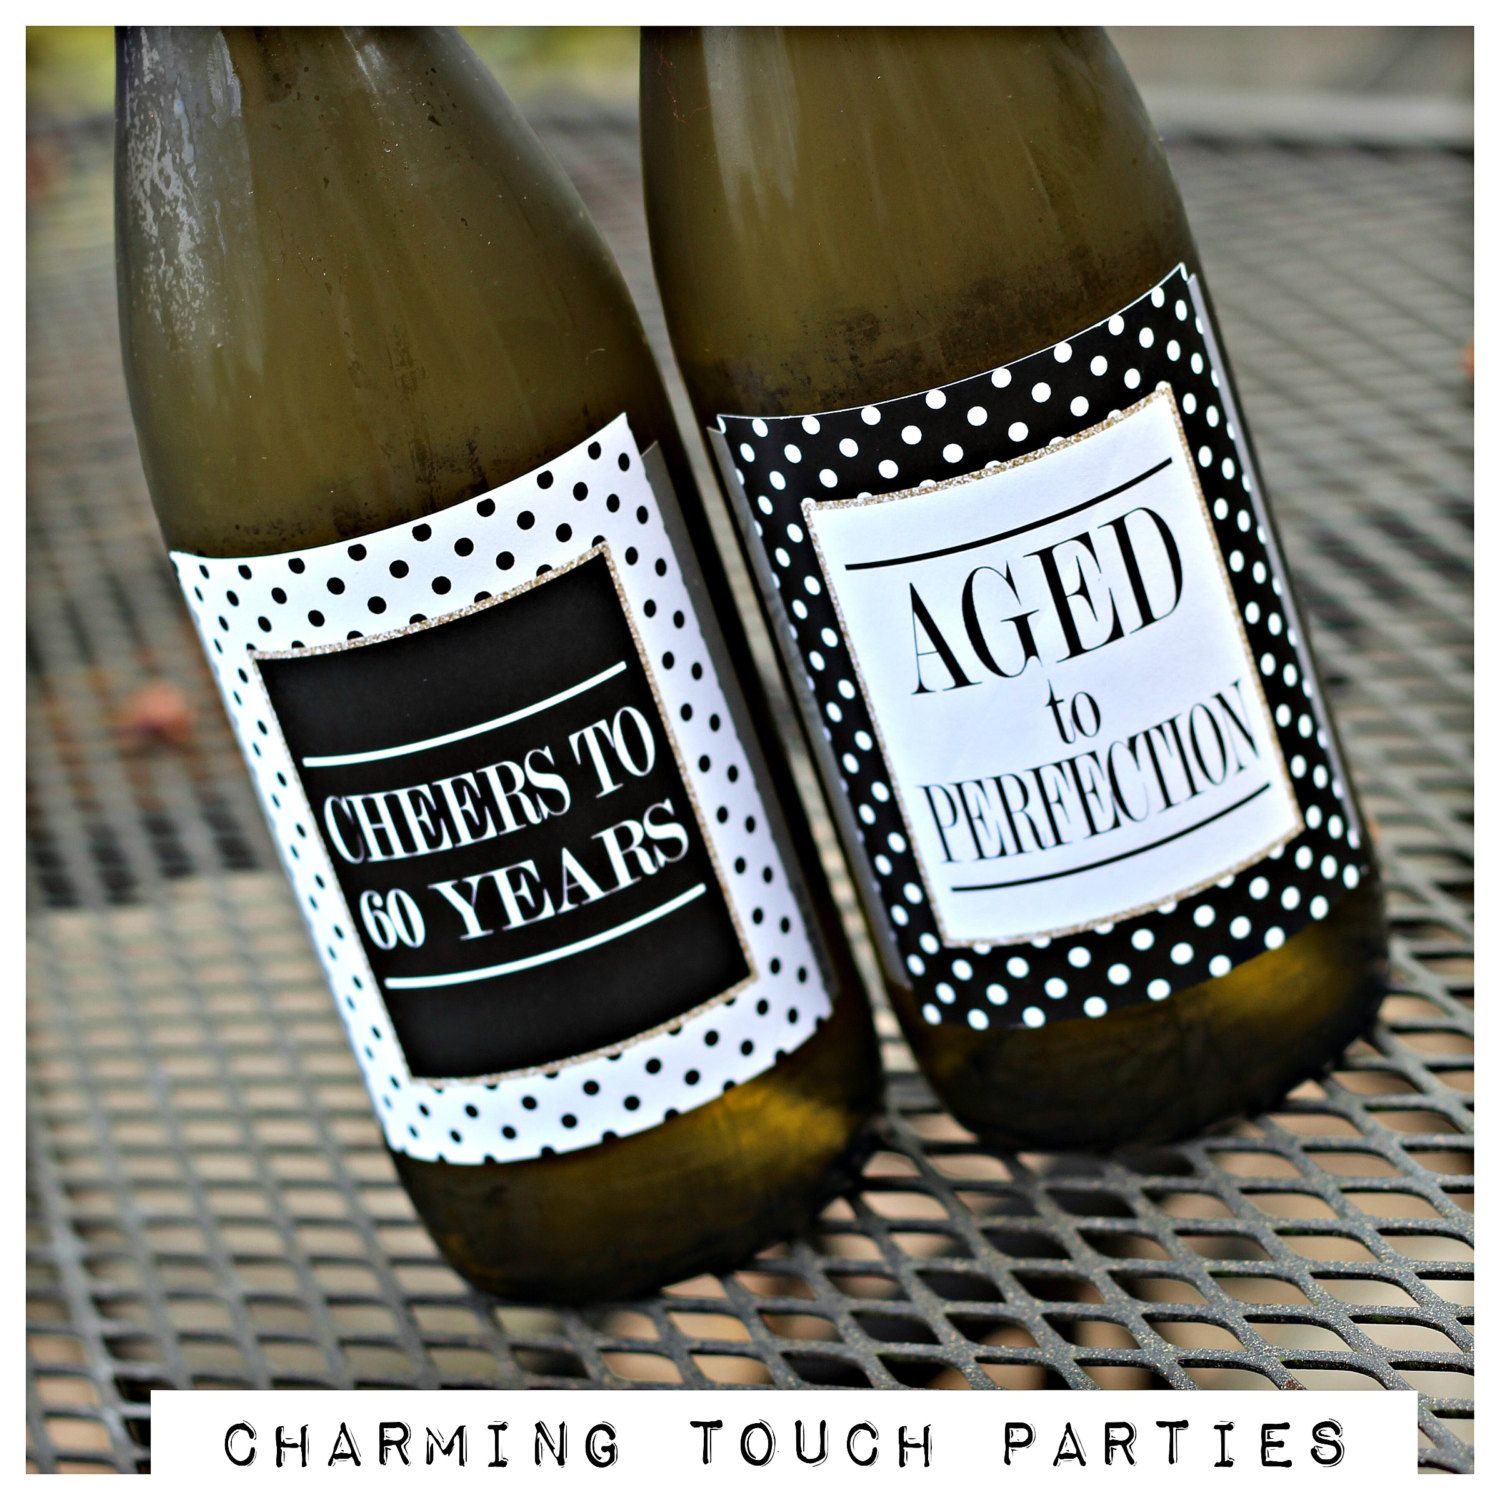 60th birthday party decor wine labels set of 4 black for Decoration 60th birthday party